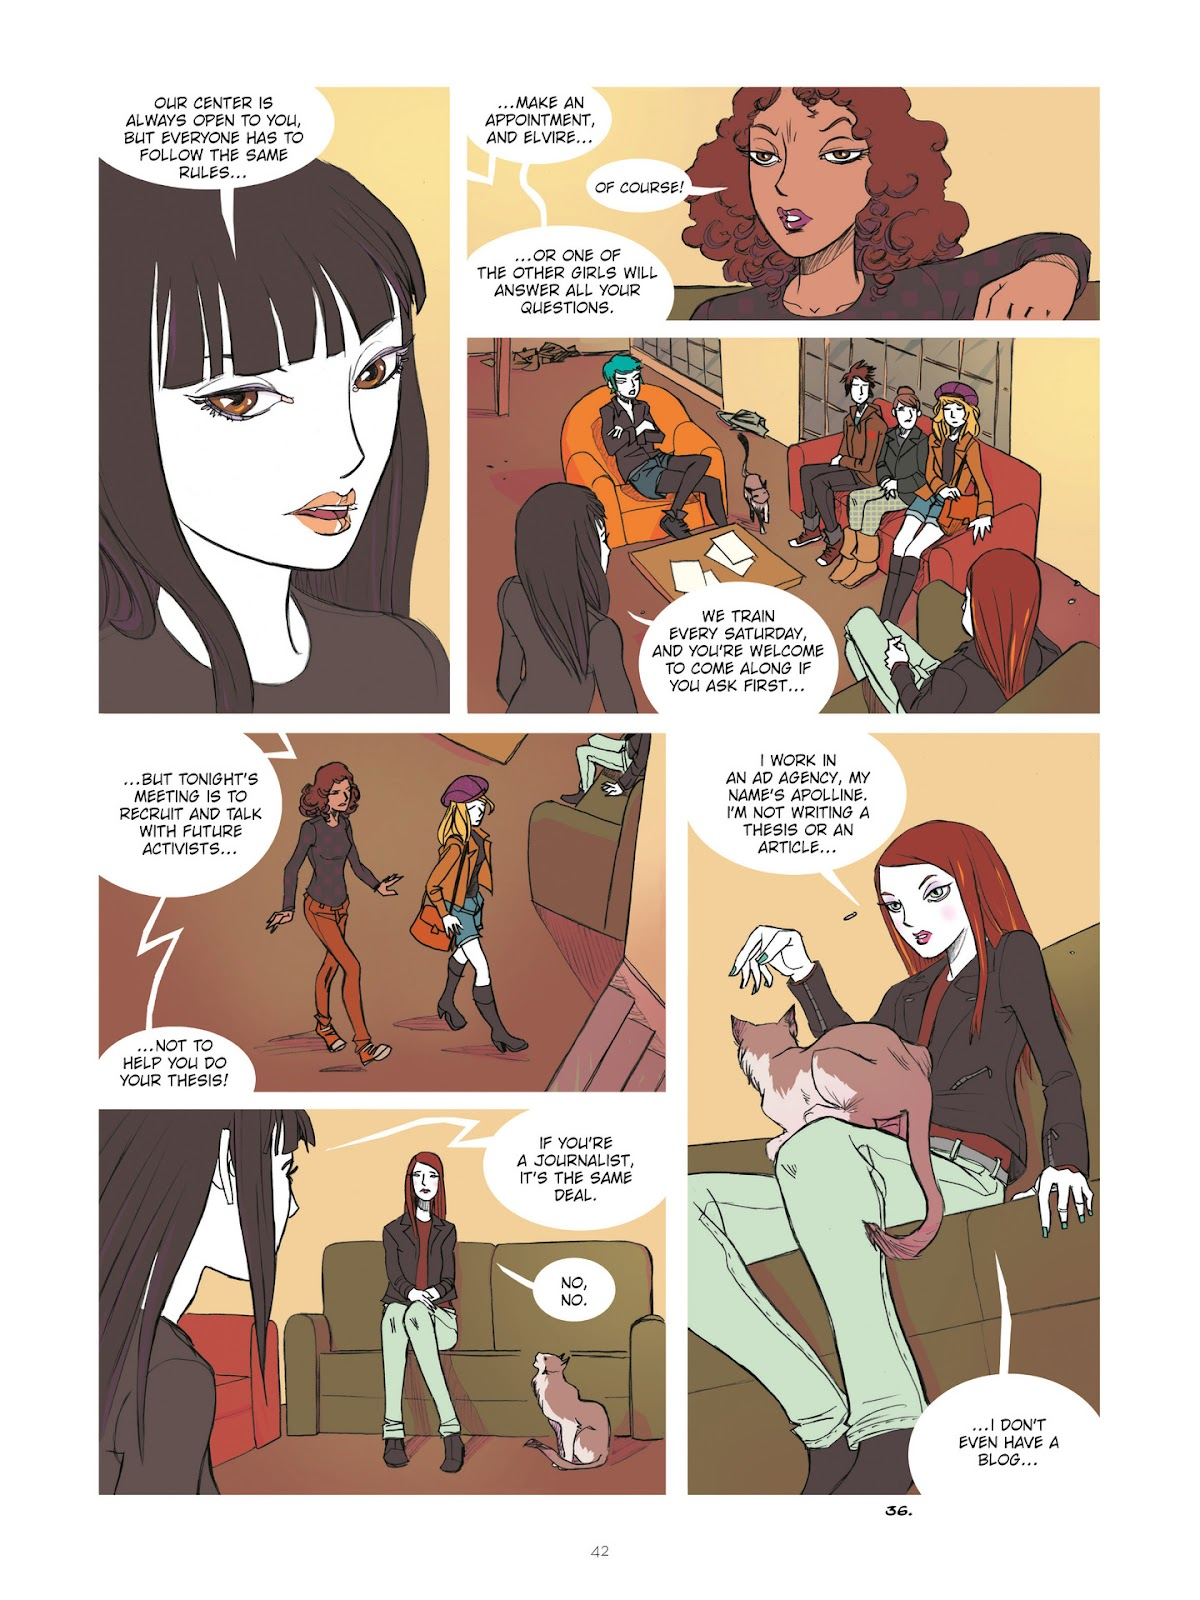 Read online Diary of A Femen comic -  Issue # TPB - 44